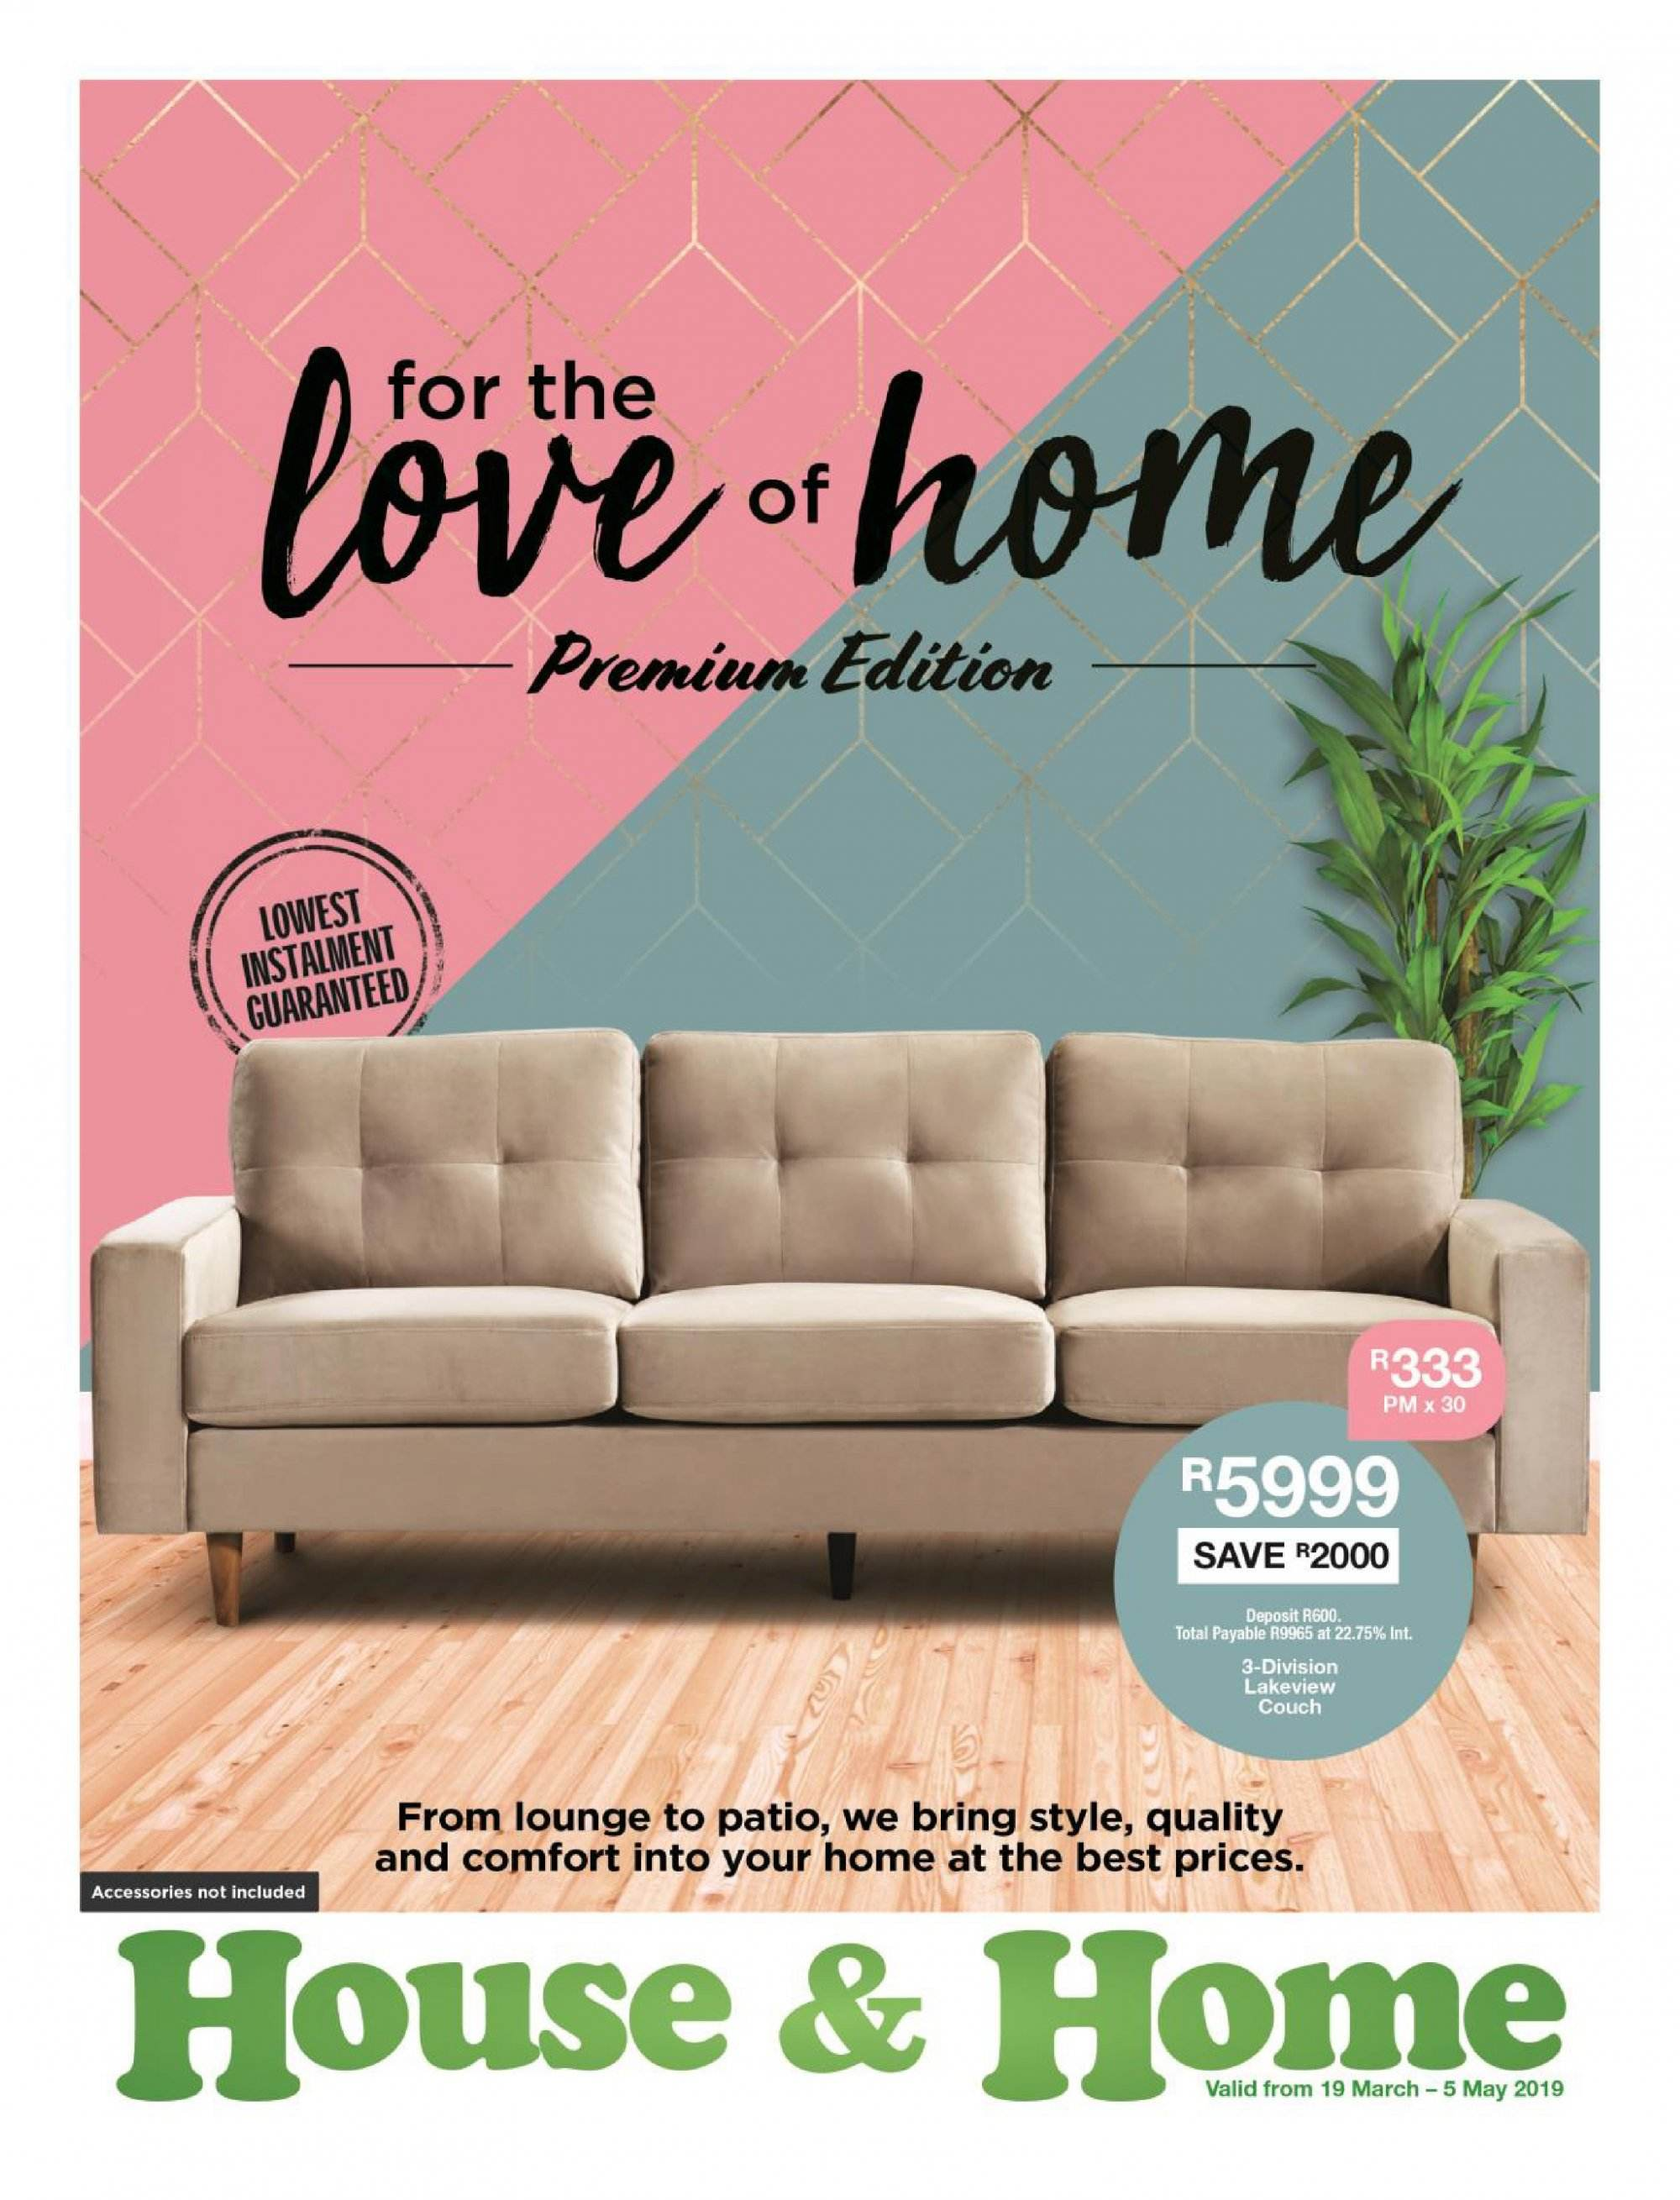 House & Home catalogue  - 03.19.2019 - 05.05.2019. Page 1.